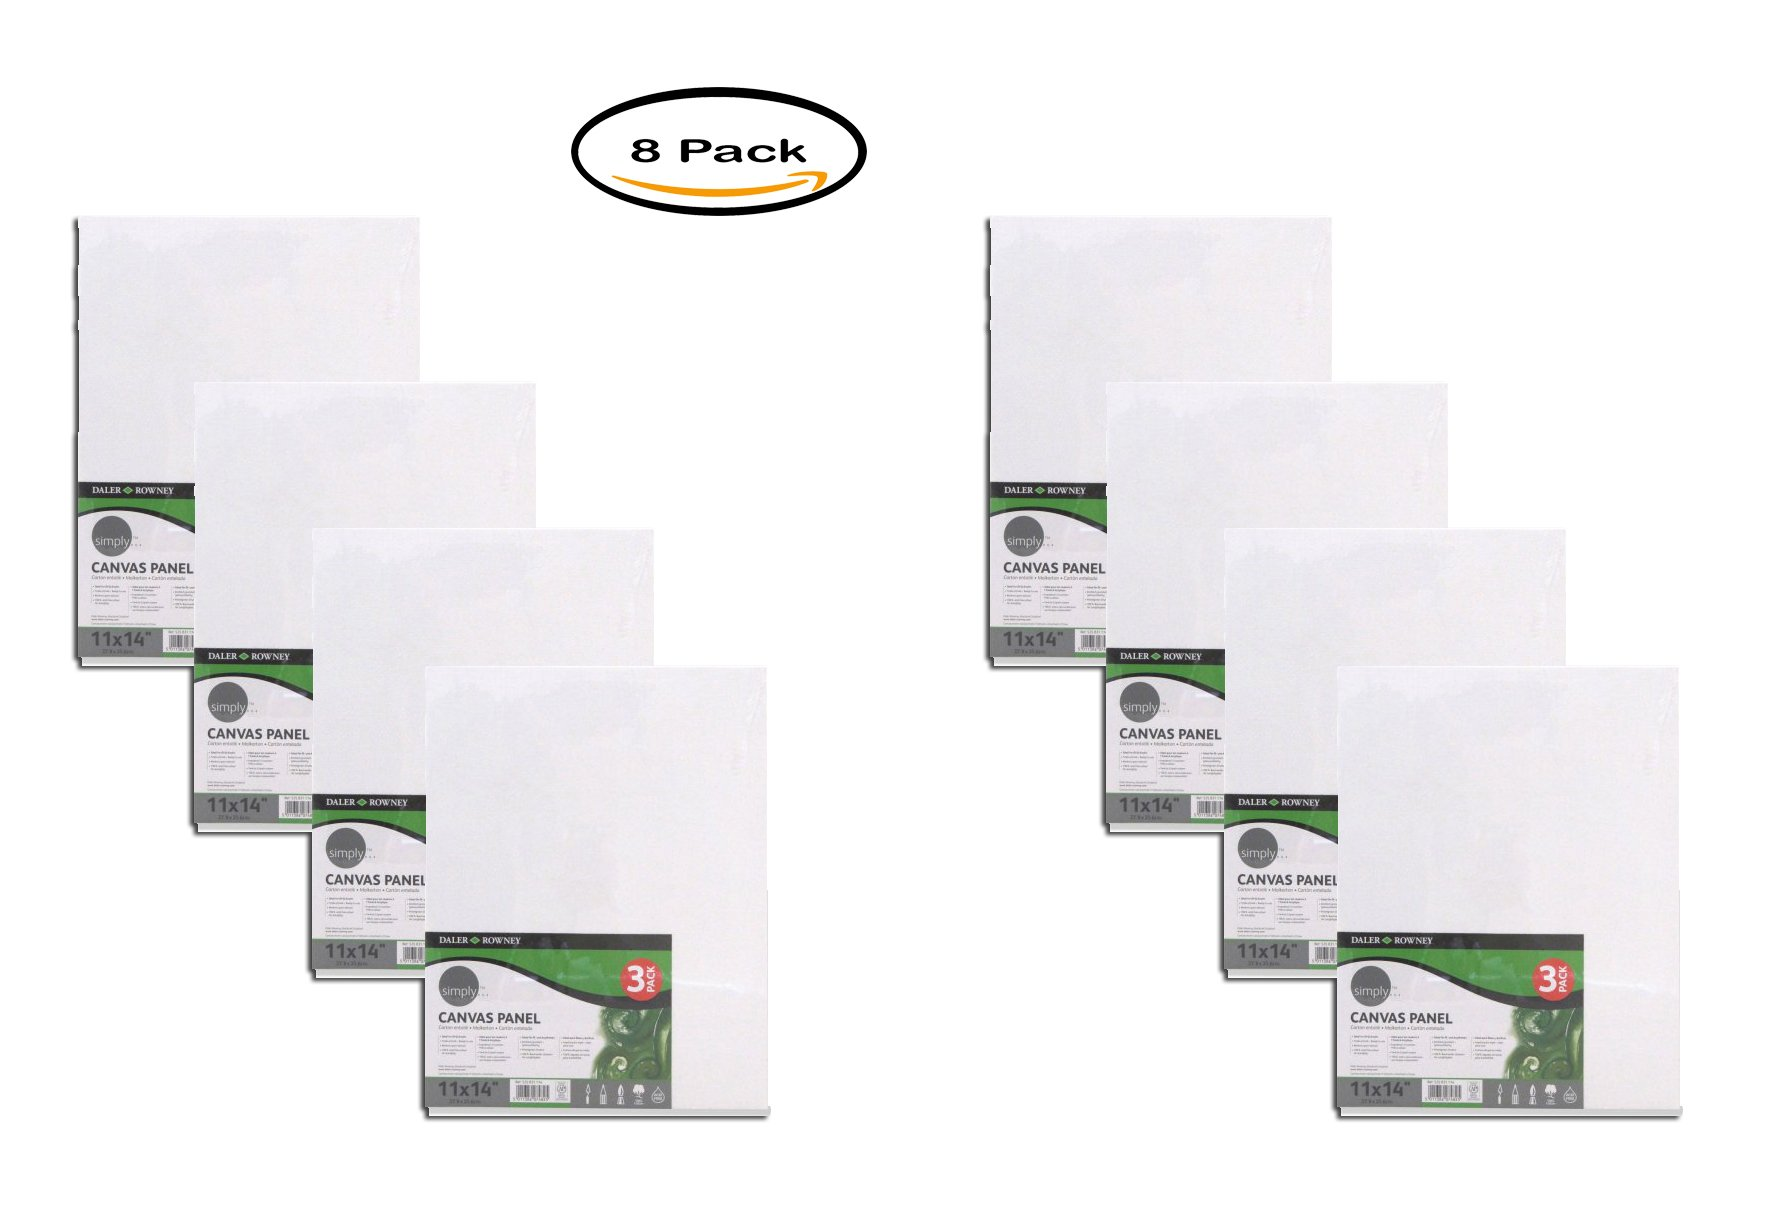 PACK OF 8 - Simply Canvas Panels, 11'' x 14'', 3 pk